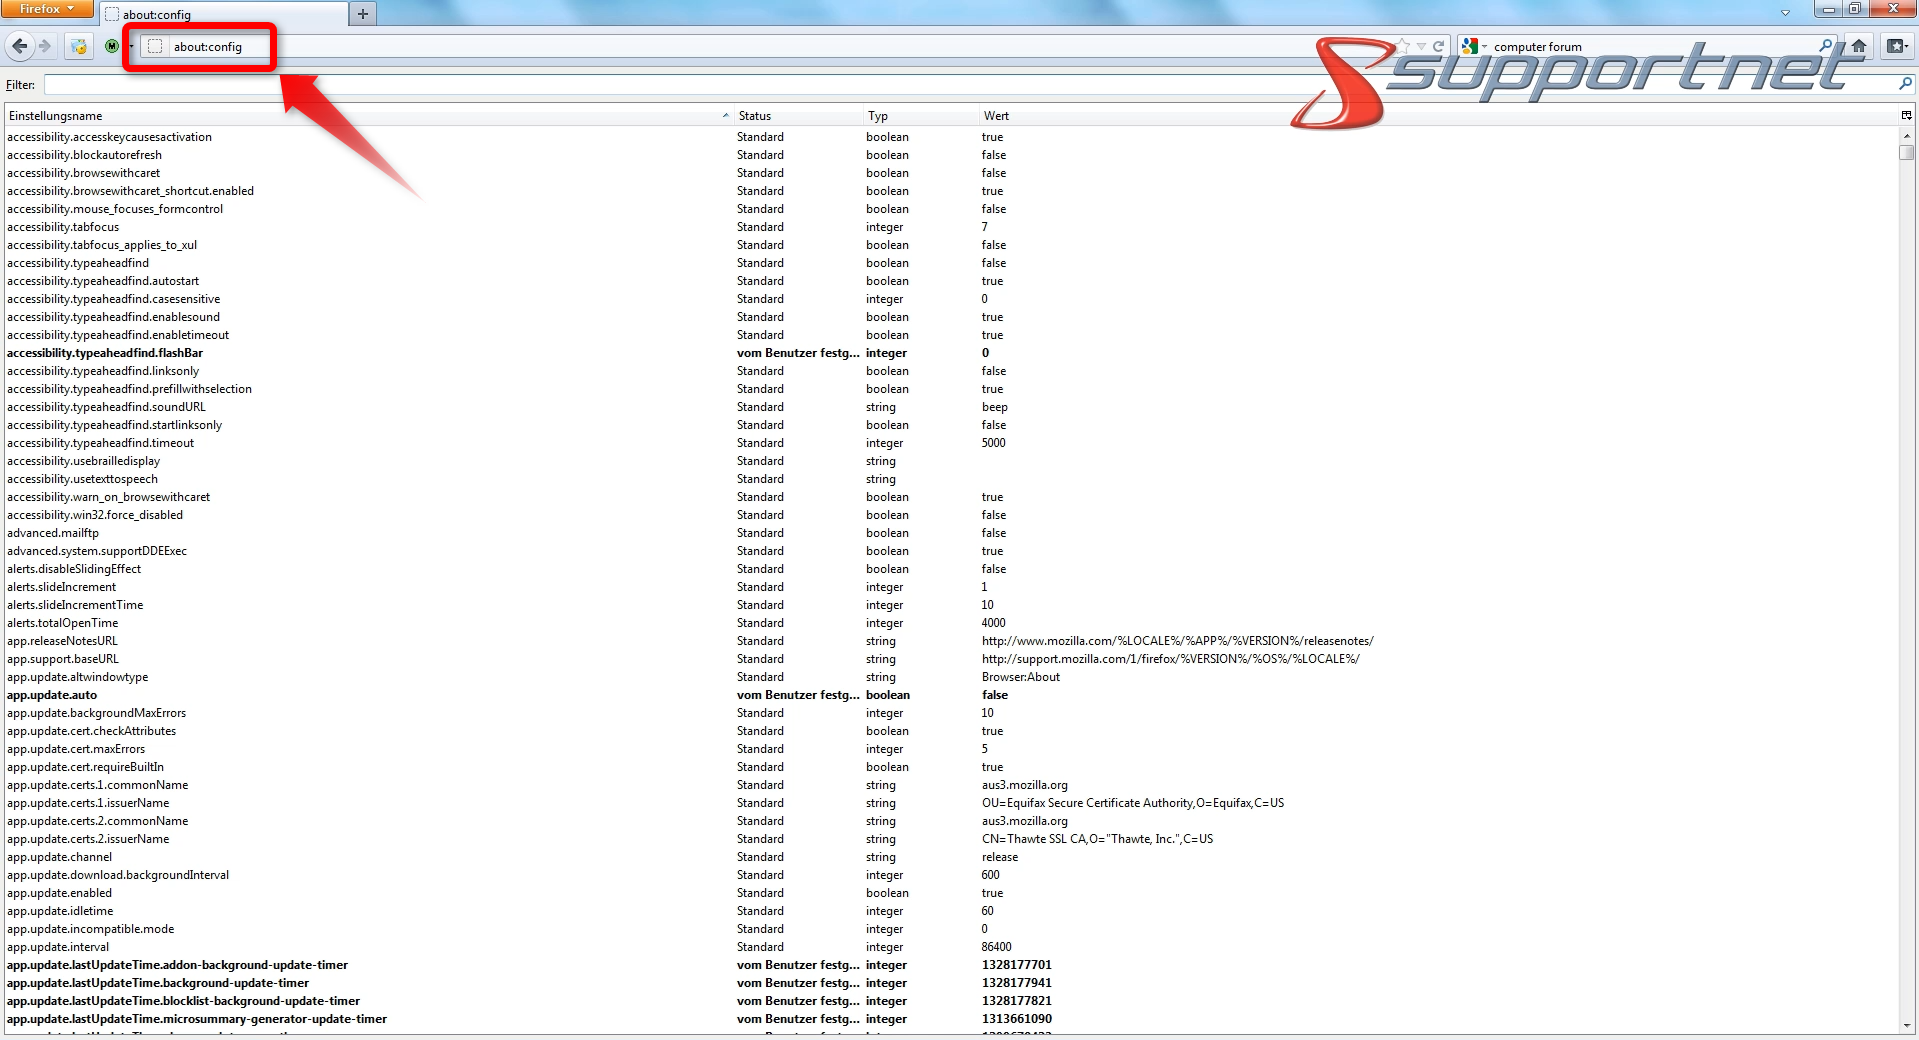 02-Firefox-Standardsuche-about-config-470.png?nocache=1328189578437